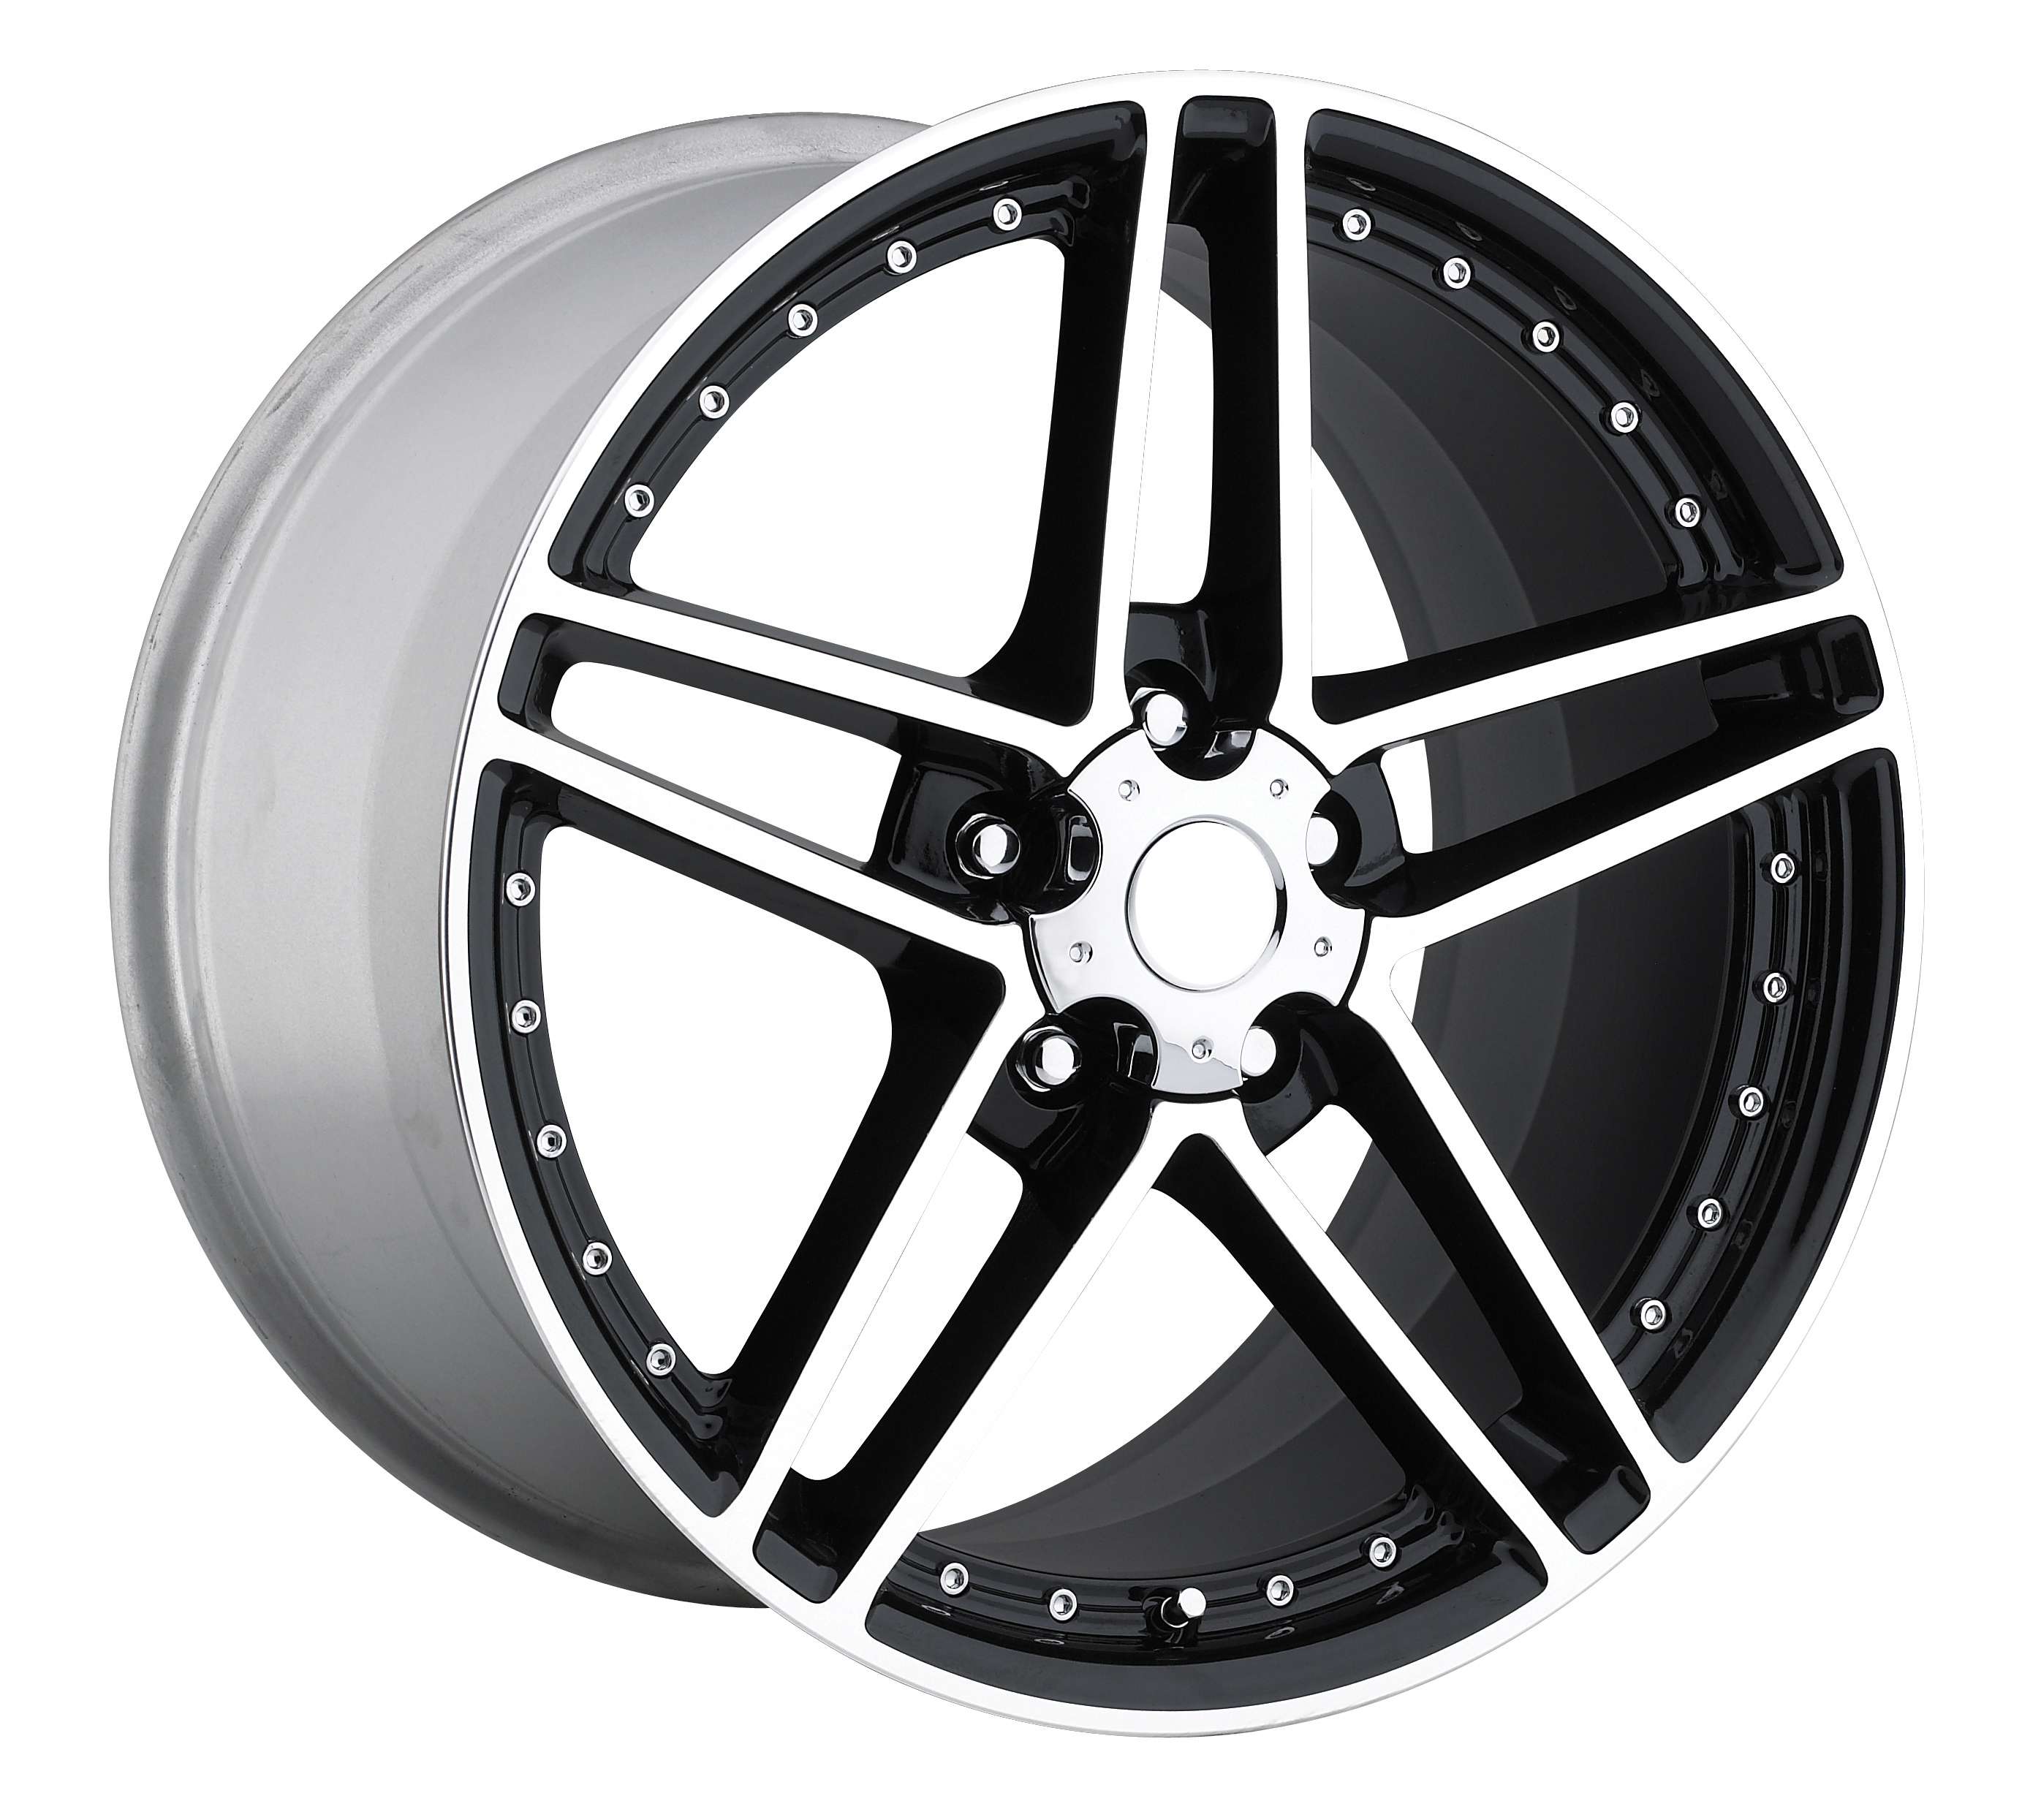 Chevrolet Corvette 1997-2012 19x12 5x4.75 +59 - C6 Z06 Motorsport Wheel -  Black Machine Face With Cap